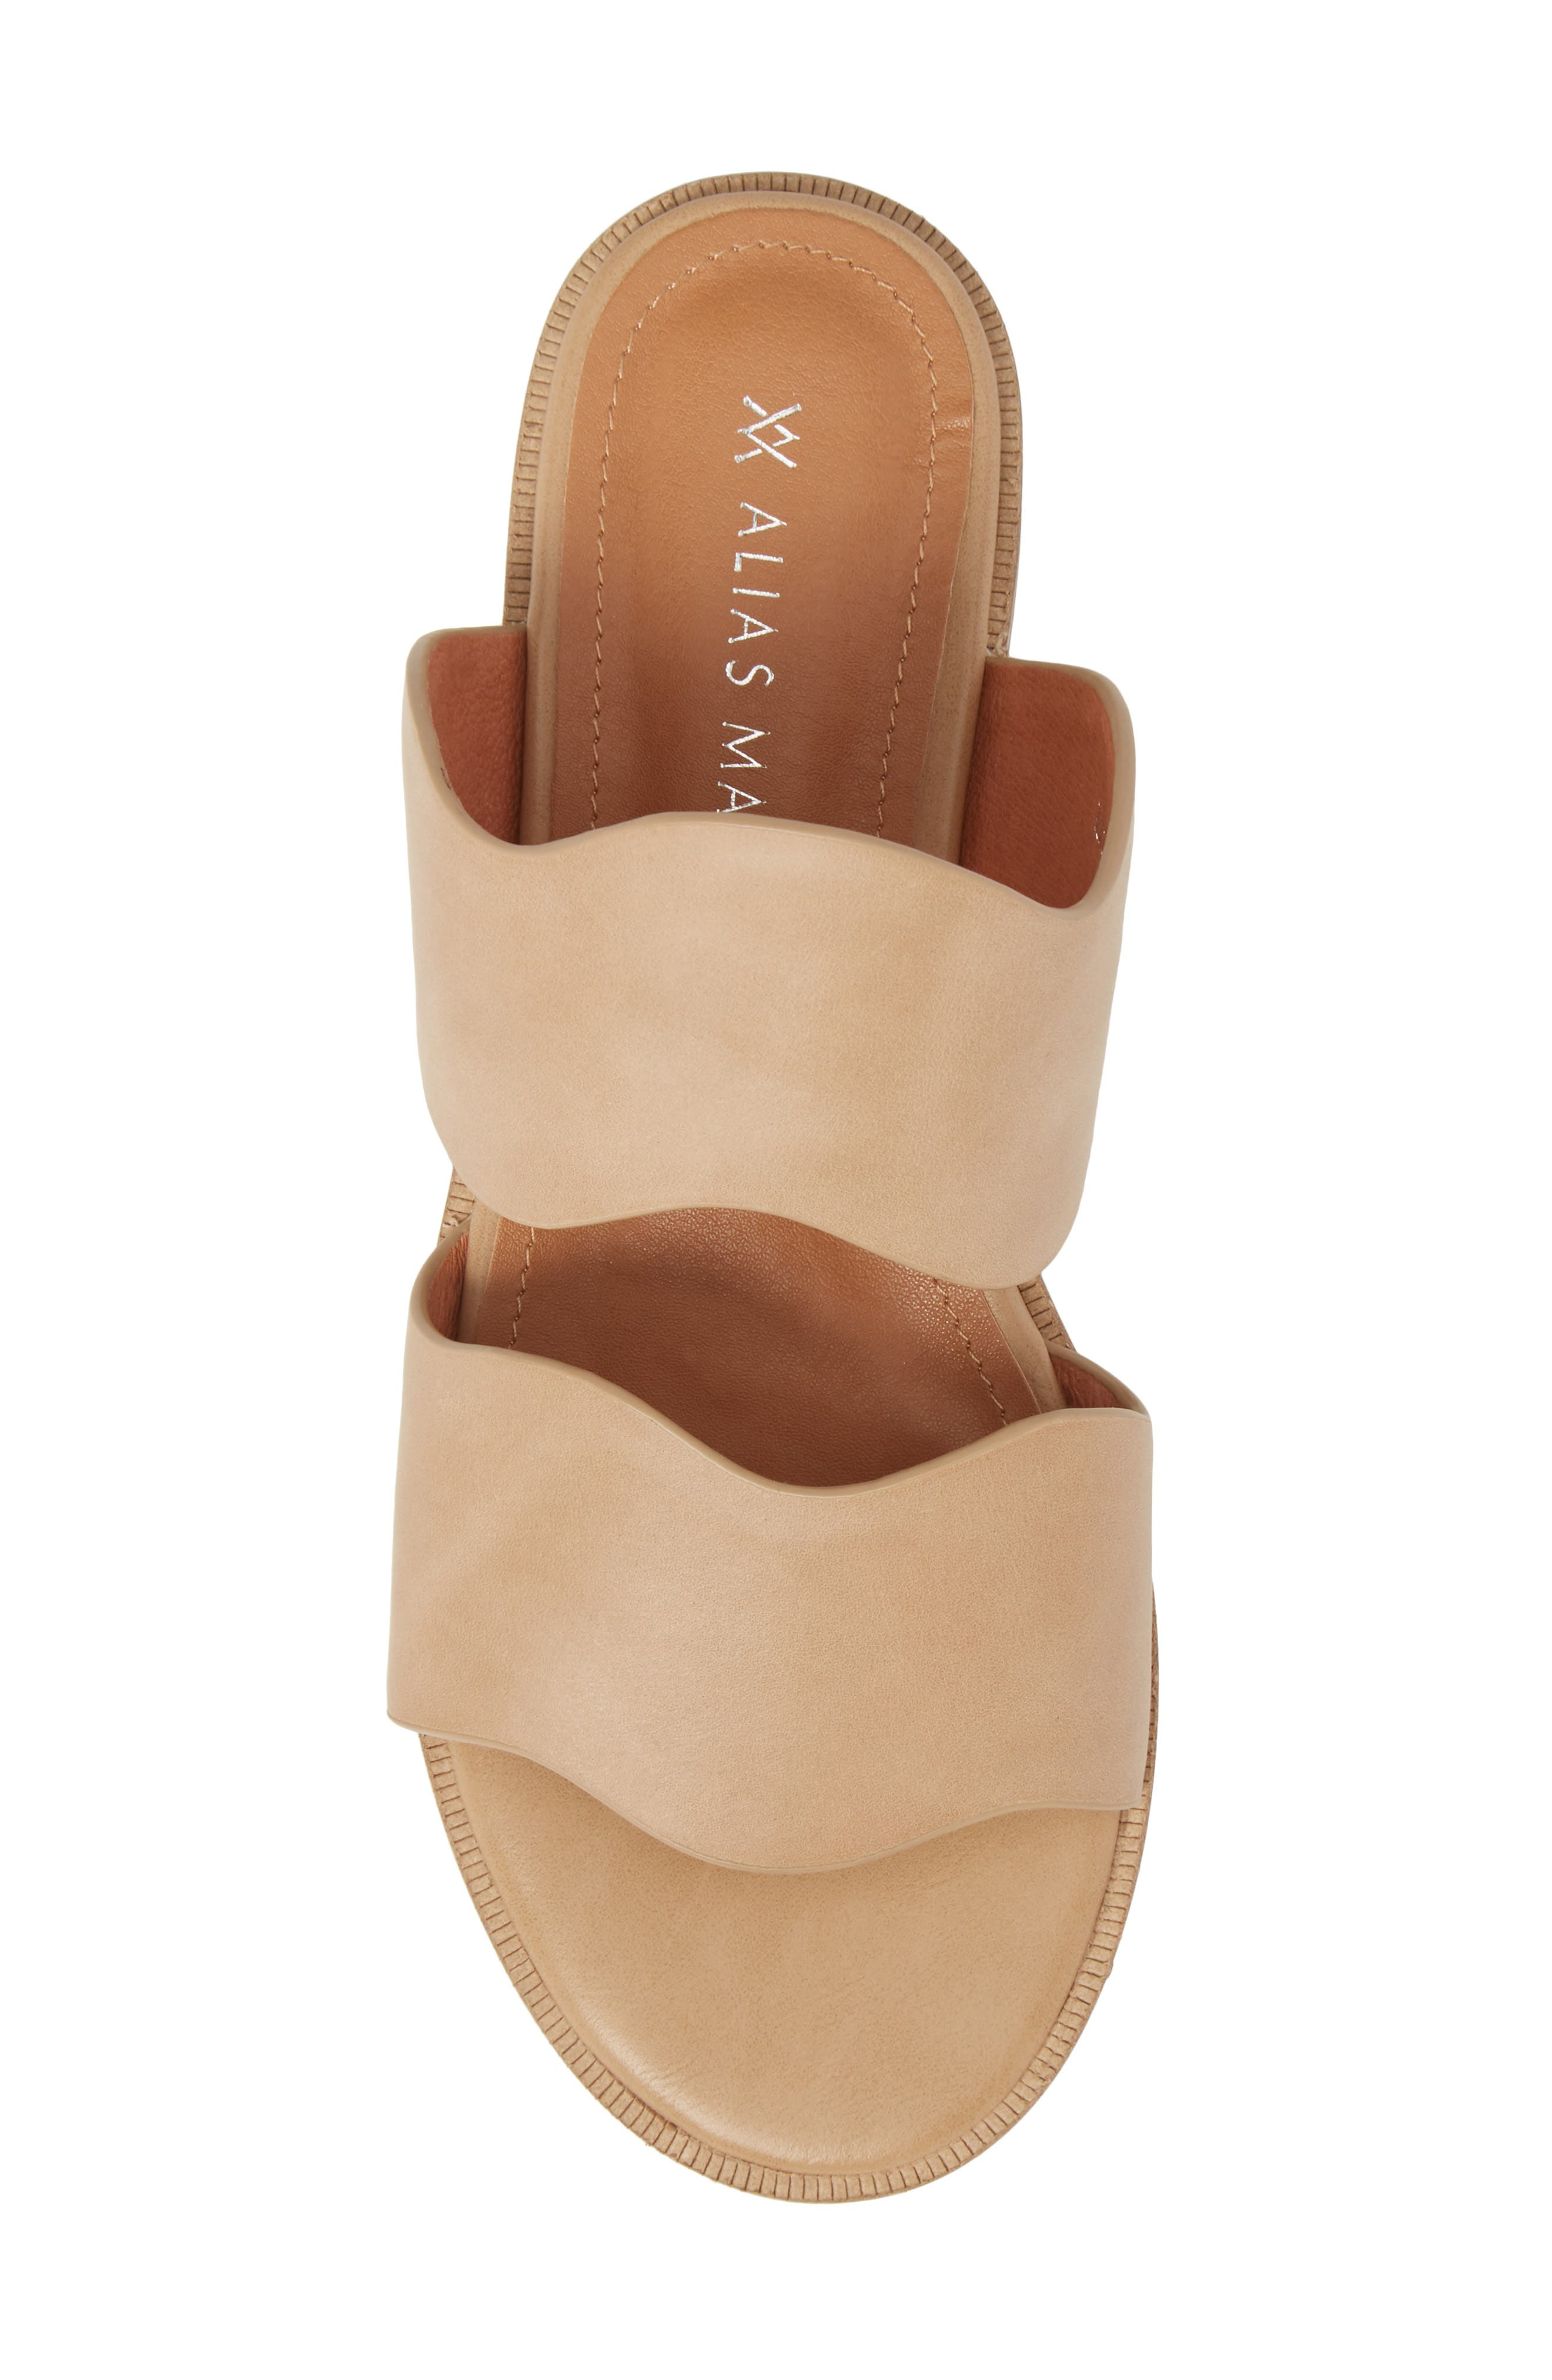 Thermos Scalloped Slide Sandal,                             Alternate thumbnail 5, color,                             Natural Leather